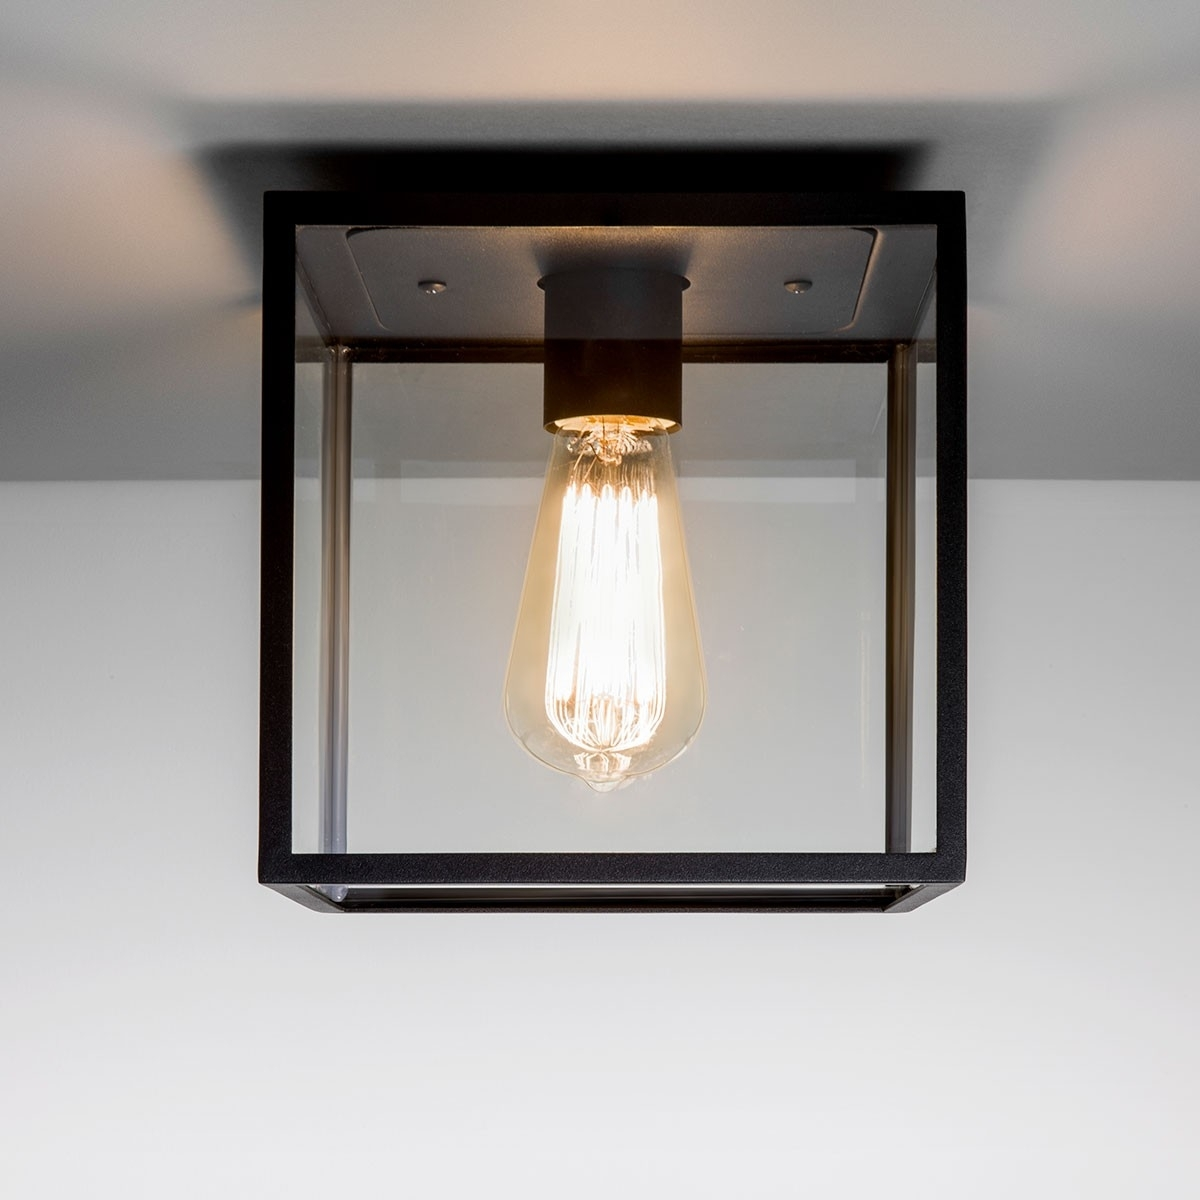 Furniture : Astro Box Black Outdoor Ceiling Light Electrical Pertaining To Outdoor Ceiling Lights From Australia (#2 of 15)